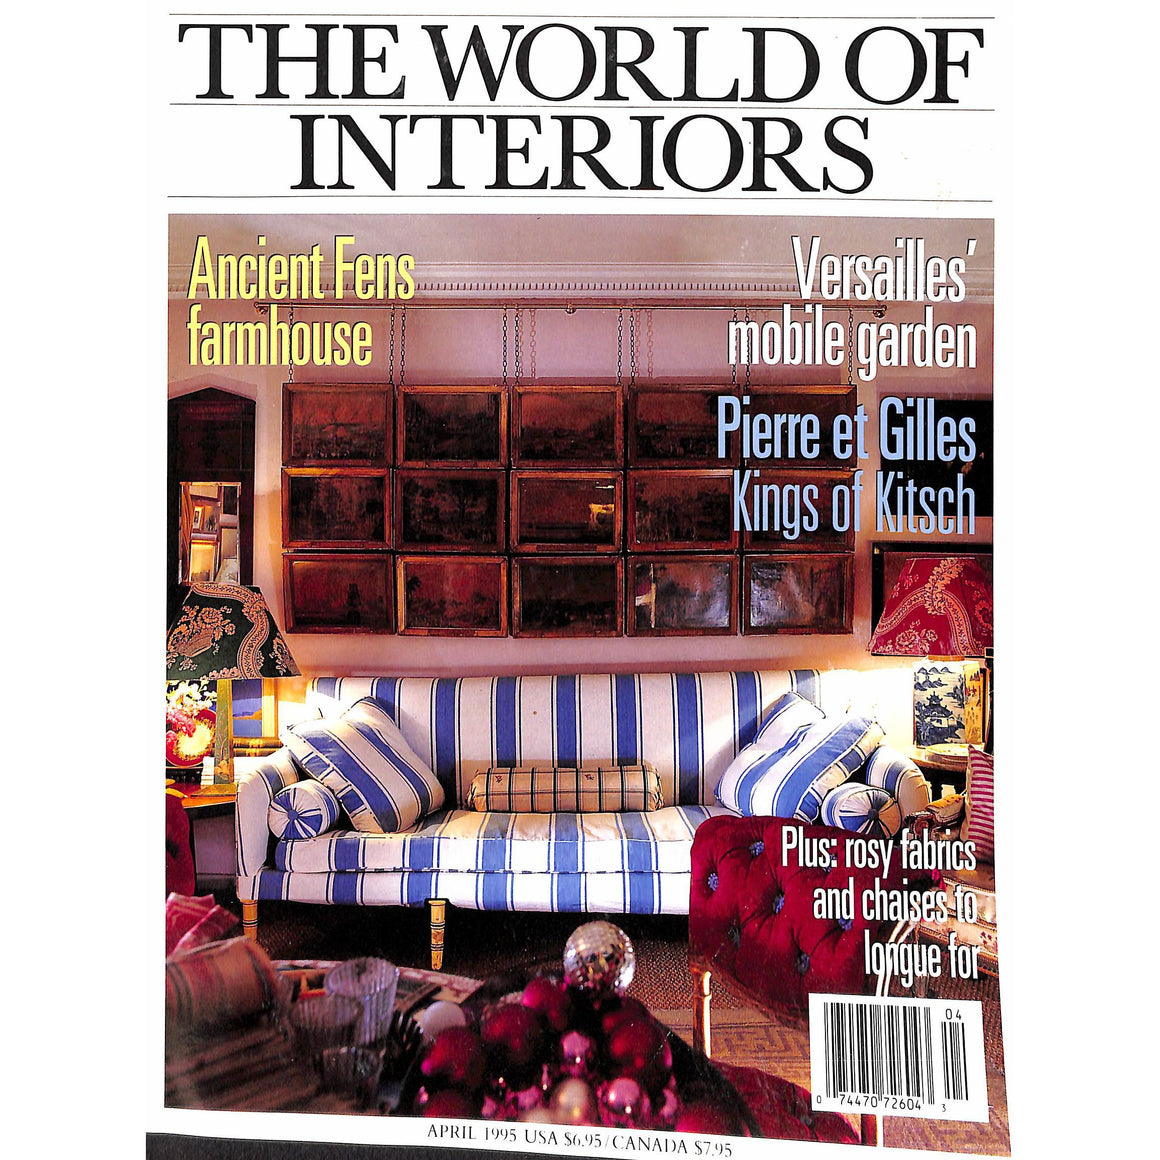 'The World of Interiors April 1995'